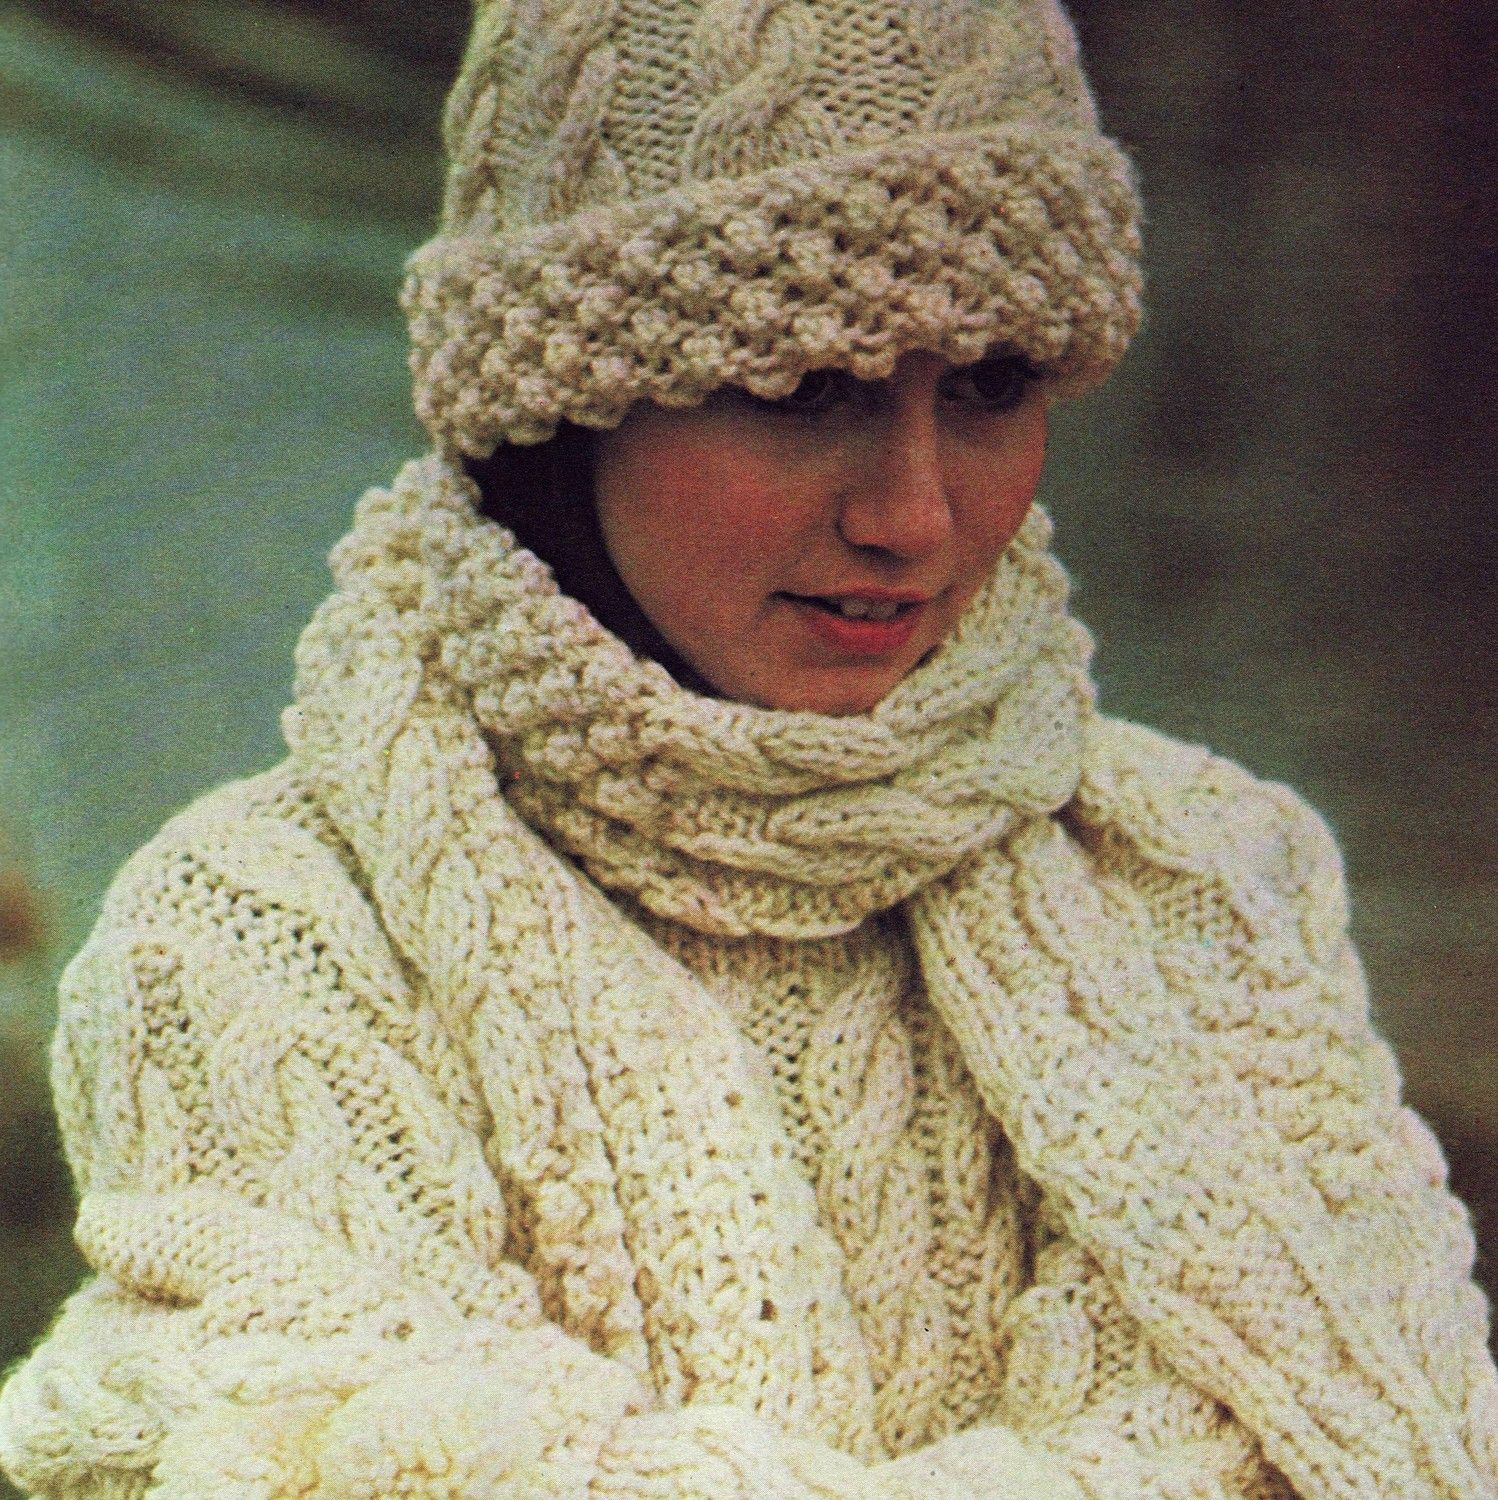 Free aran stitch patterns vintage knitting pattern pdf aran free aran stitch patterns vintage knitting pattern pdf aran sweater hat scarf and gloves cable bankloansurffo Gallery